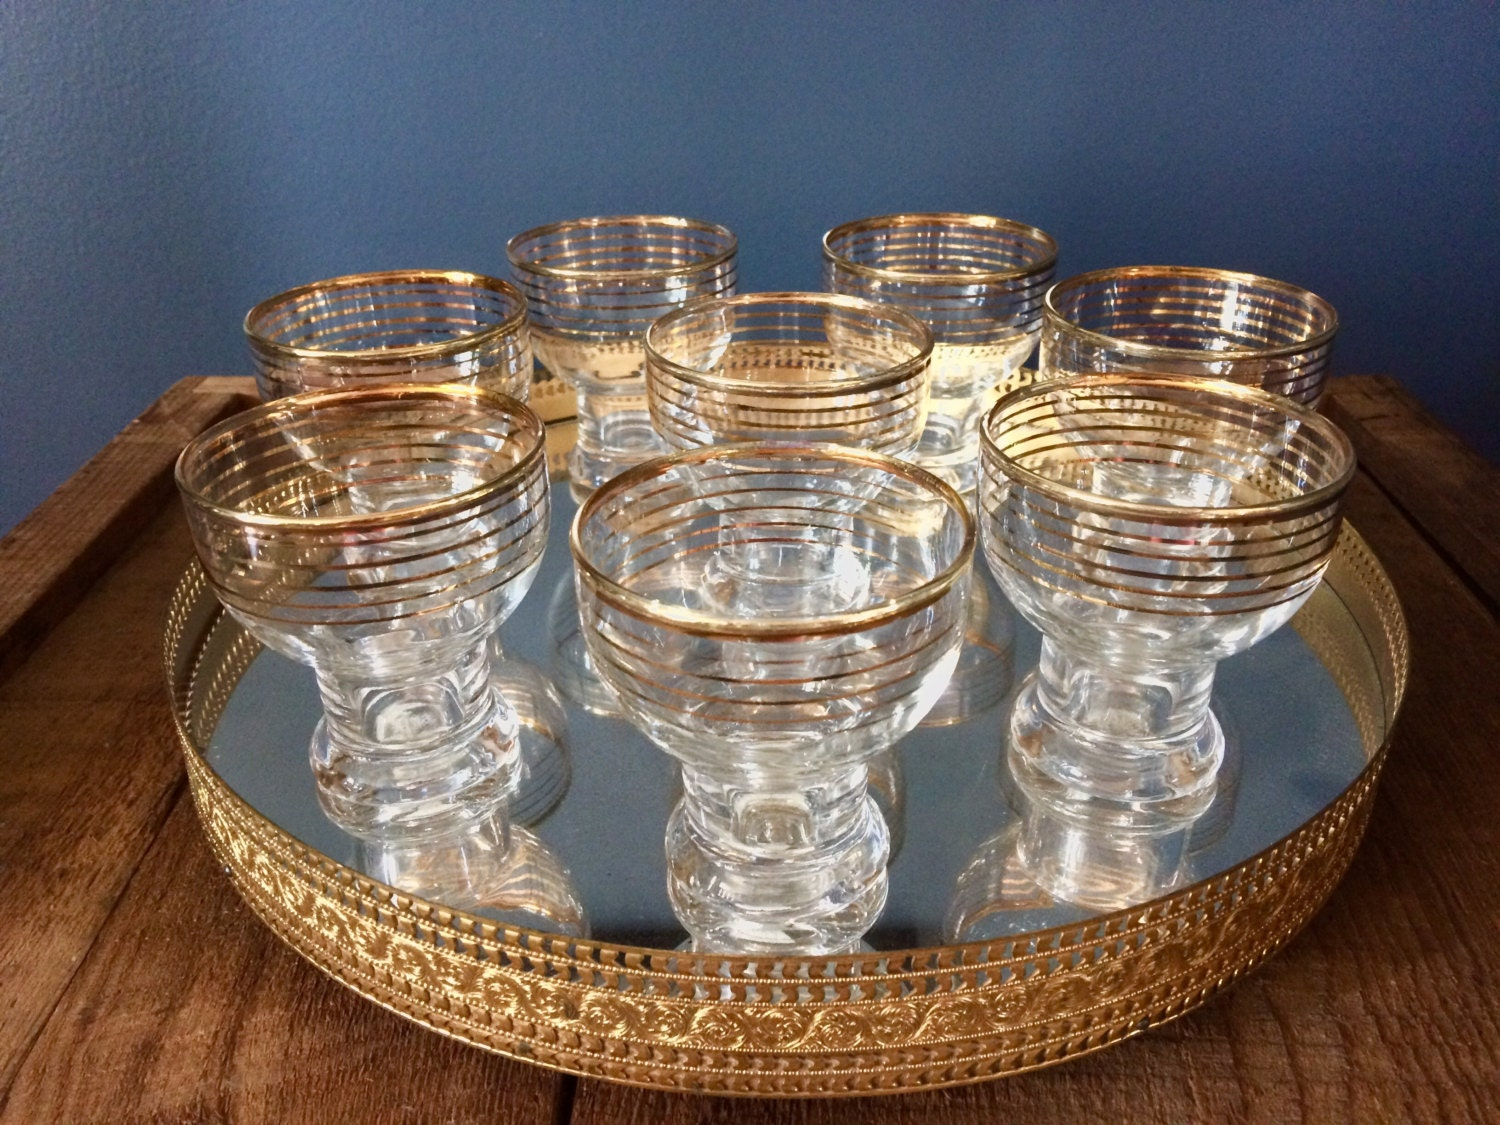 unique mid century barware set of 8 shooter glasses 4 ounce